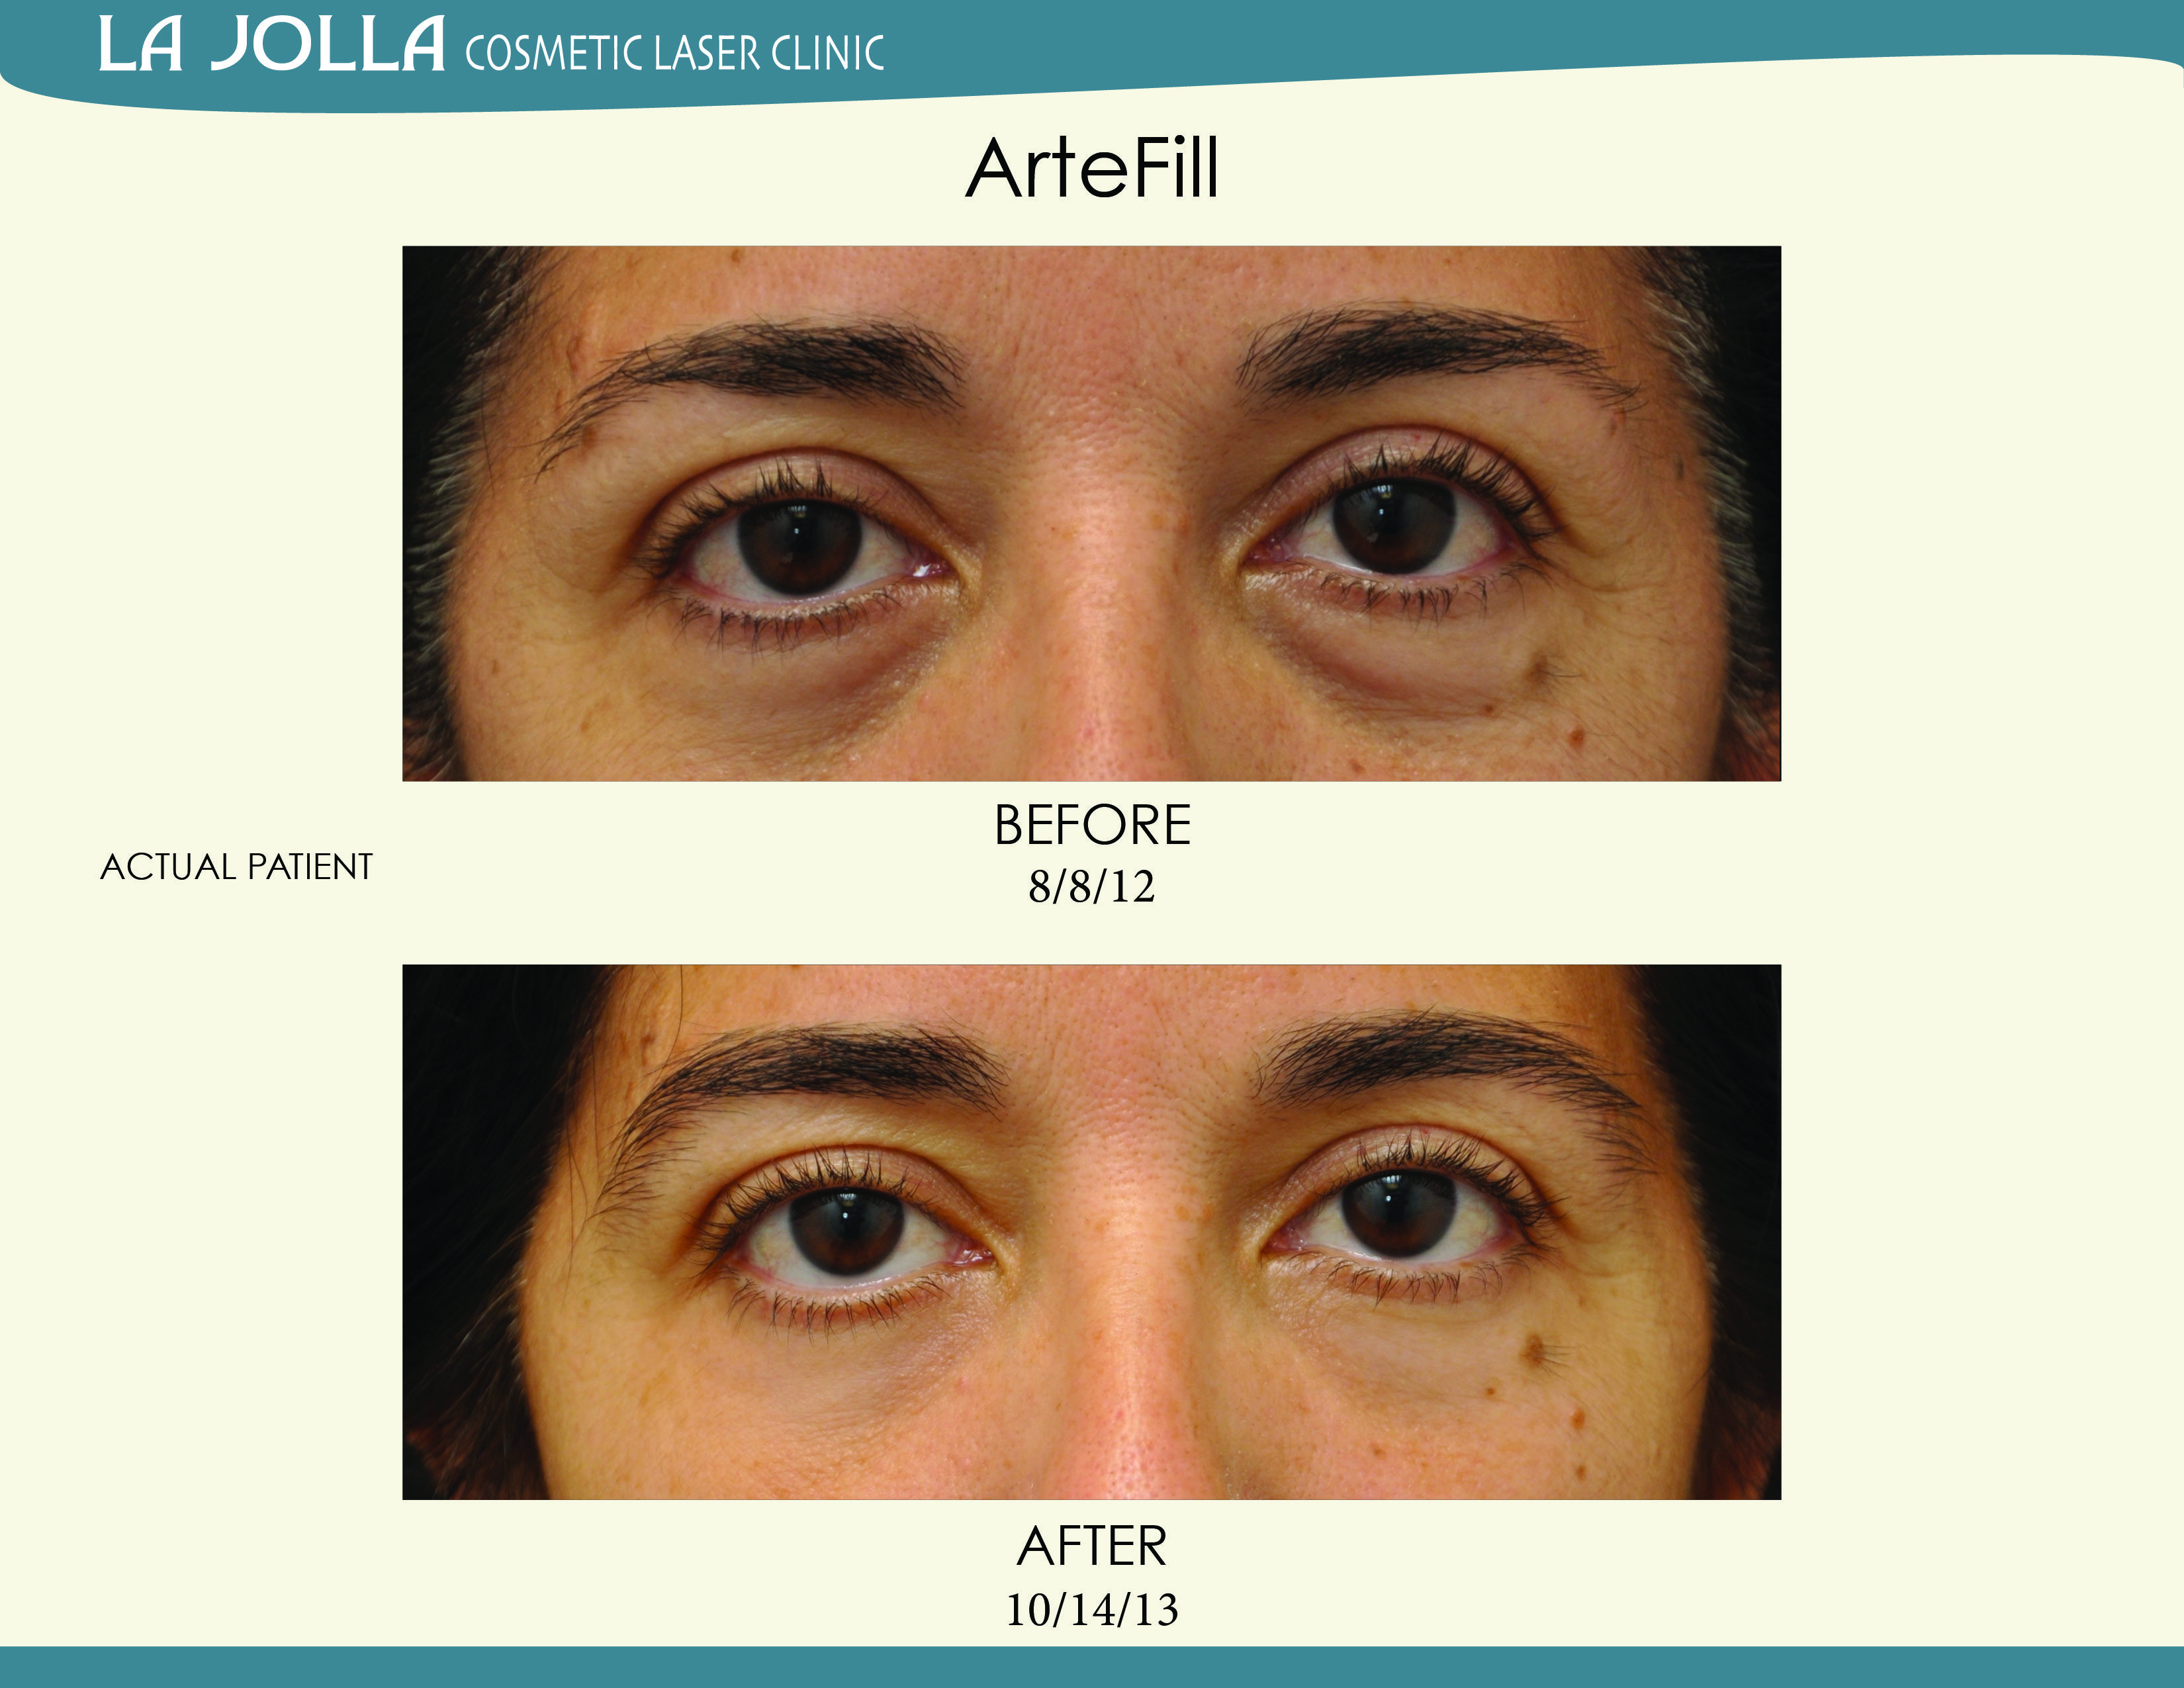 Patient Treated With Artefill At La Jolla Cosmetic Laser Clinic Cosmetics Laser Laser Clinics Cosmetics